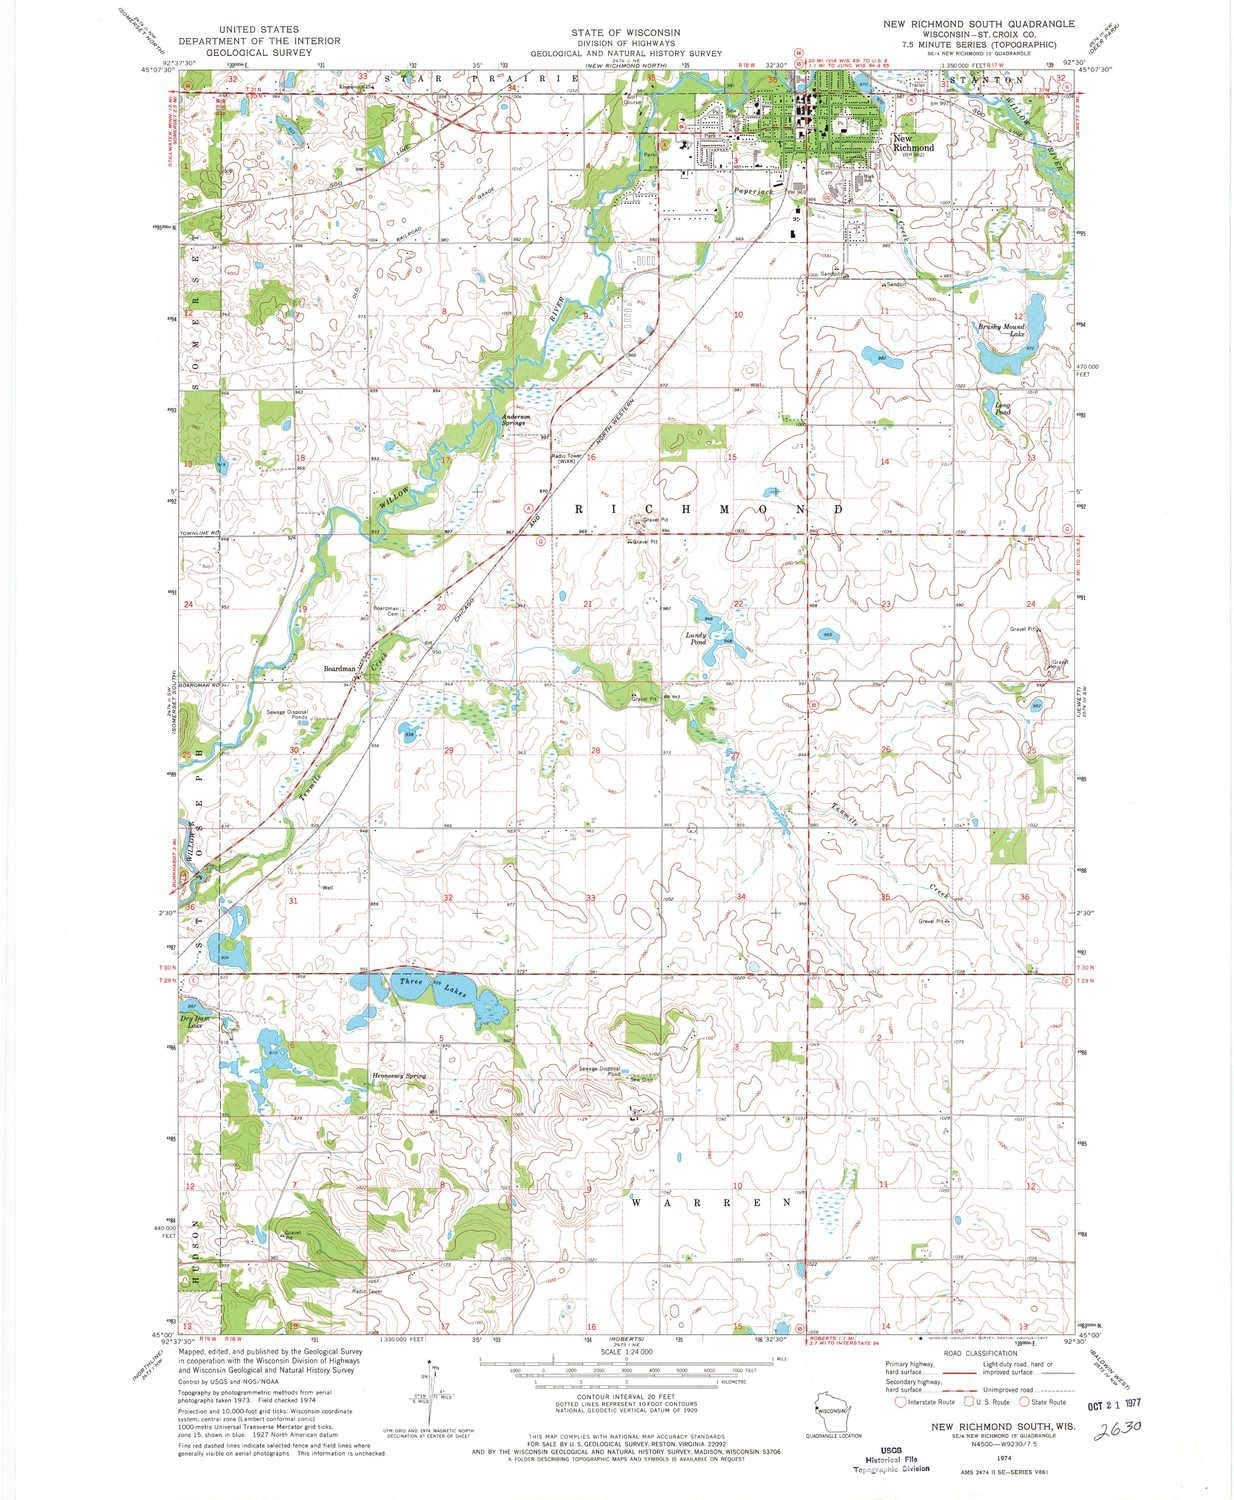 YellowMaps New Richmond 35% OFF South WI topo X 1:24000 Sale item 7.5 Scale map